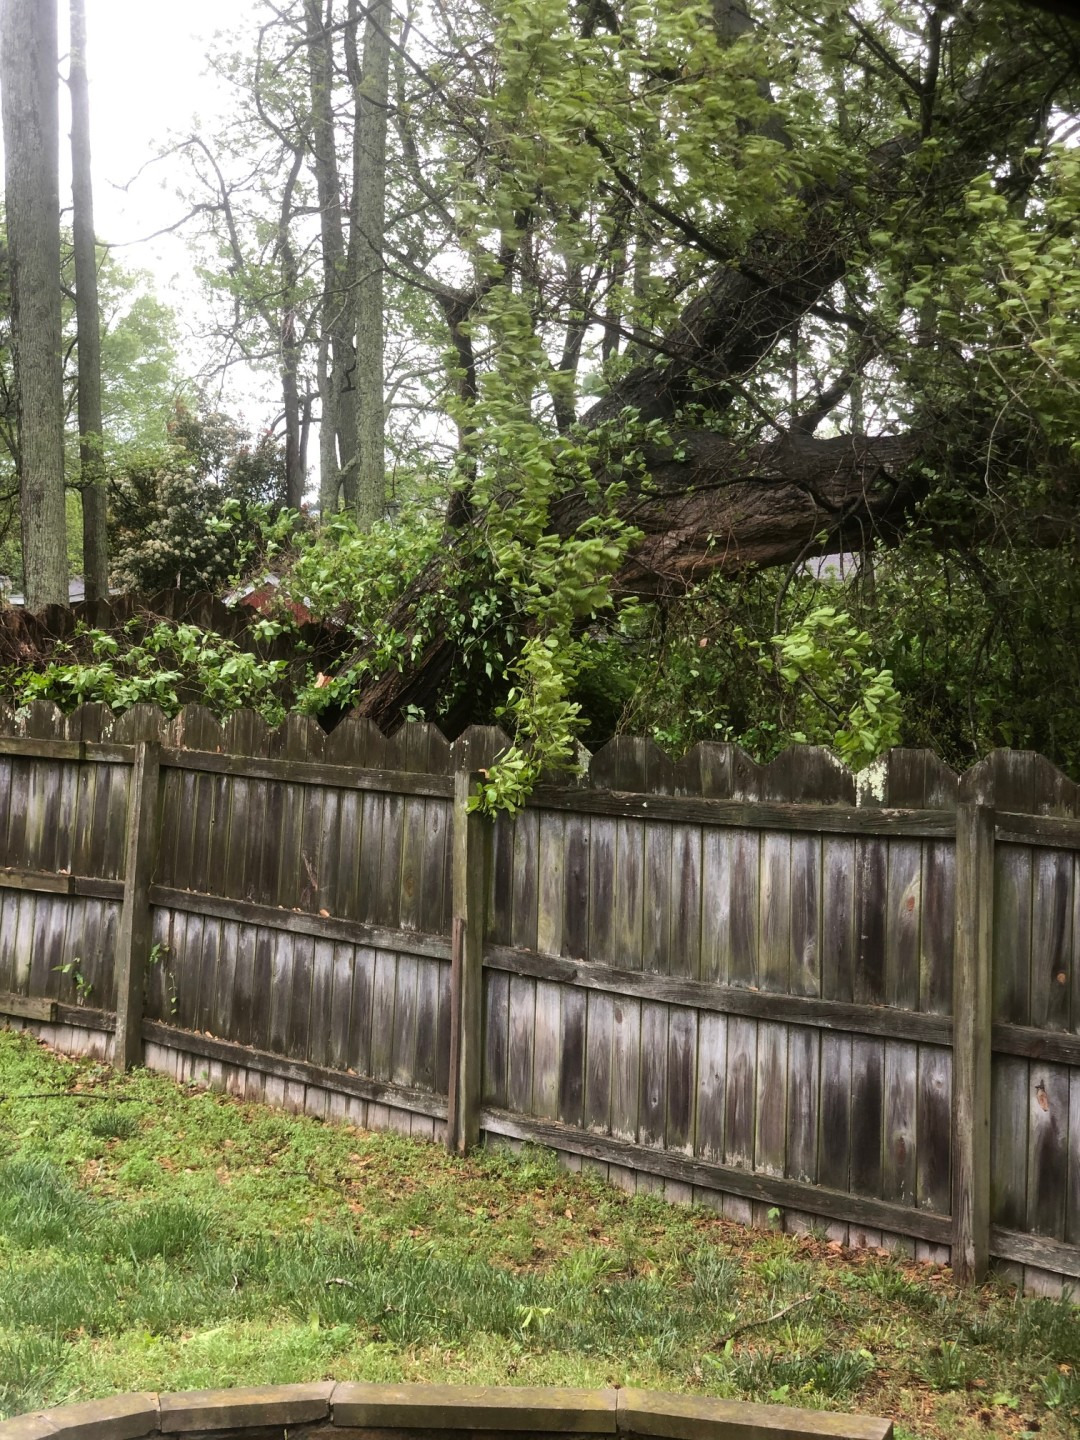 Chesapeake Fence & Awning Co Inc Inspirational Weather Photos From April 13 Severe Storms